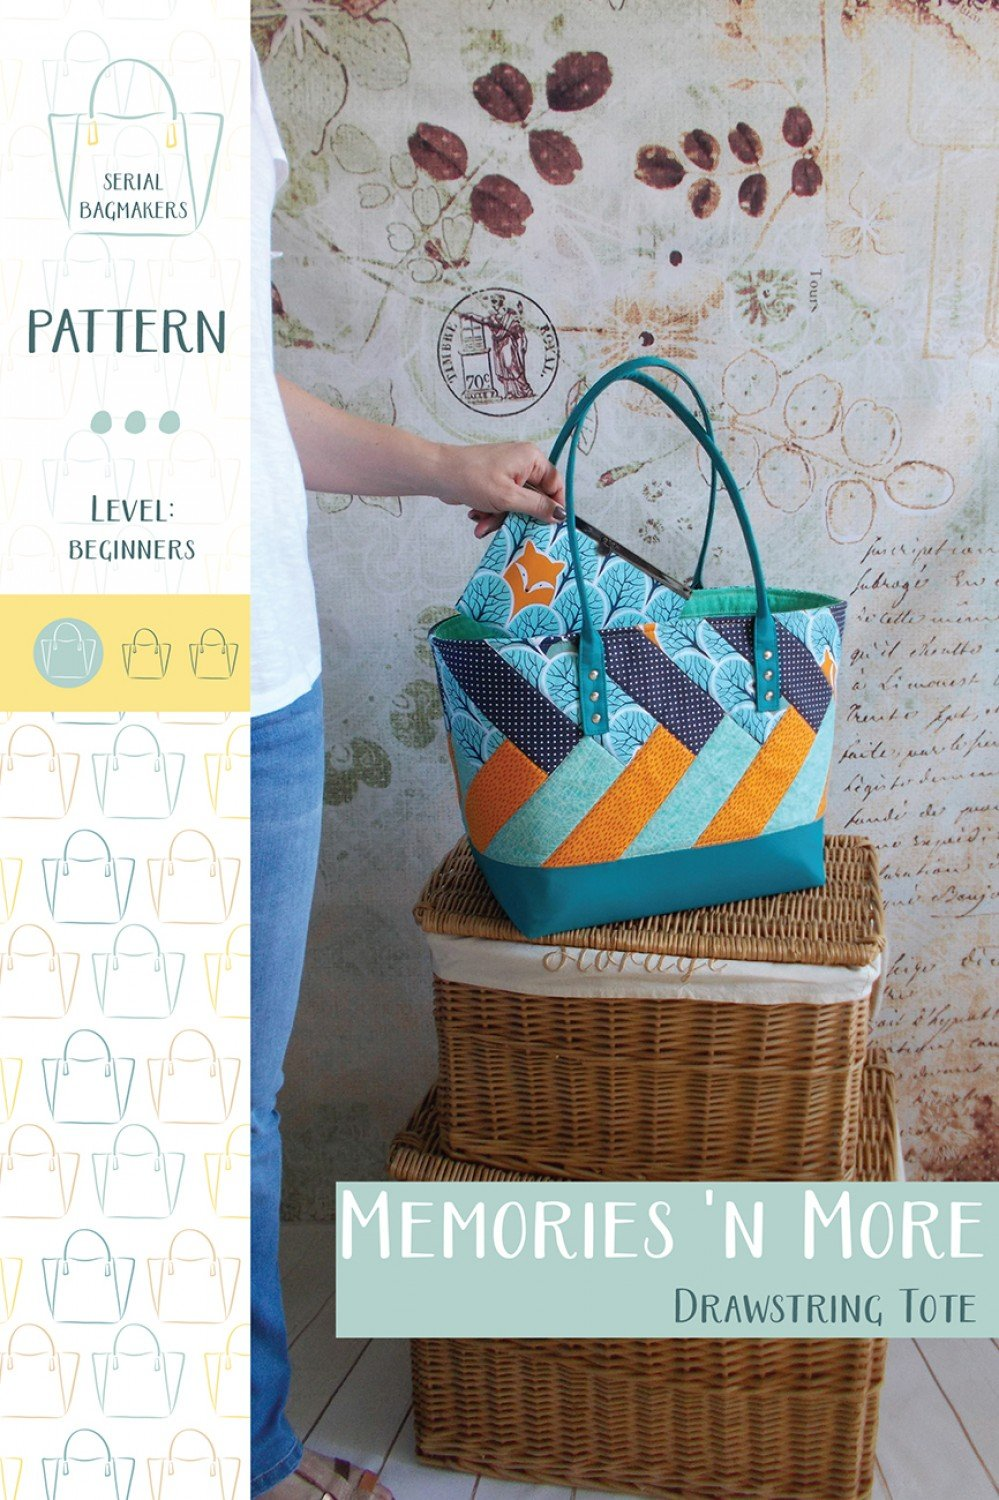 Memories N More Drawstring Tote